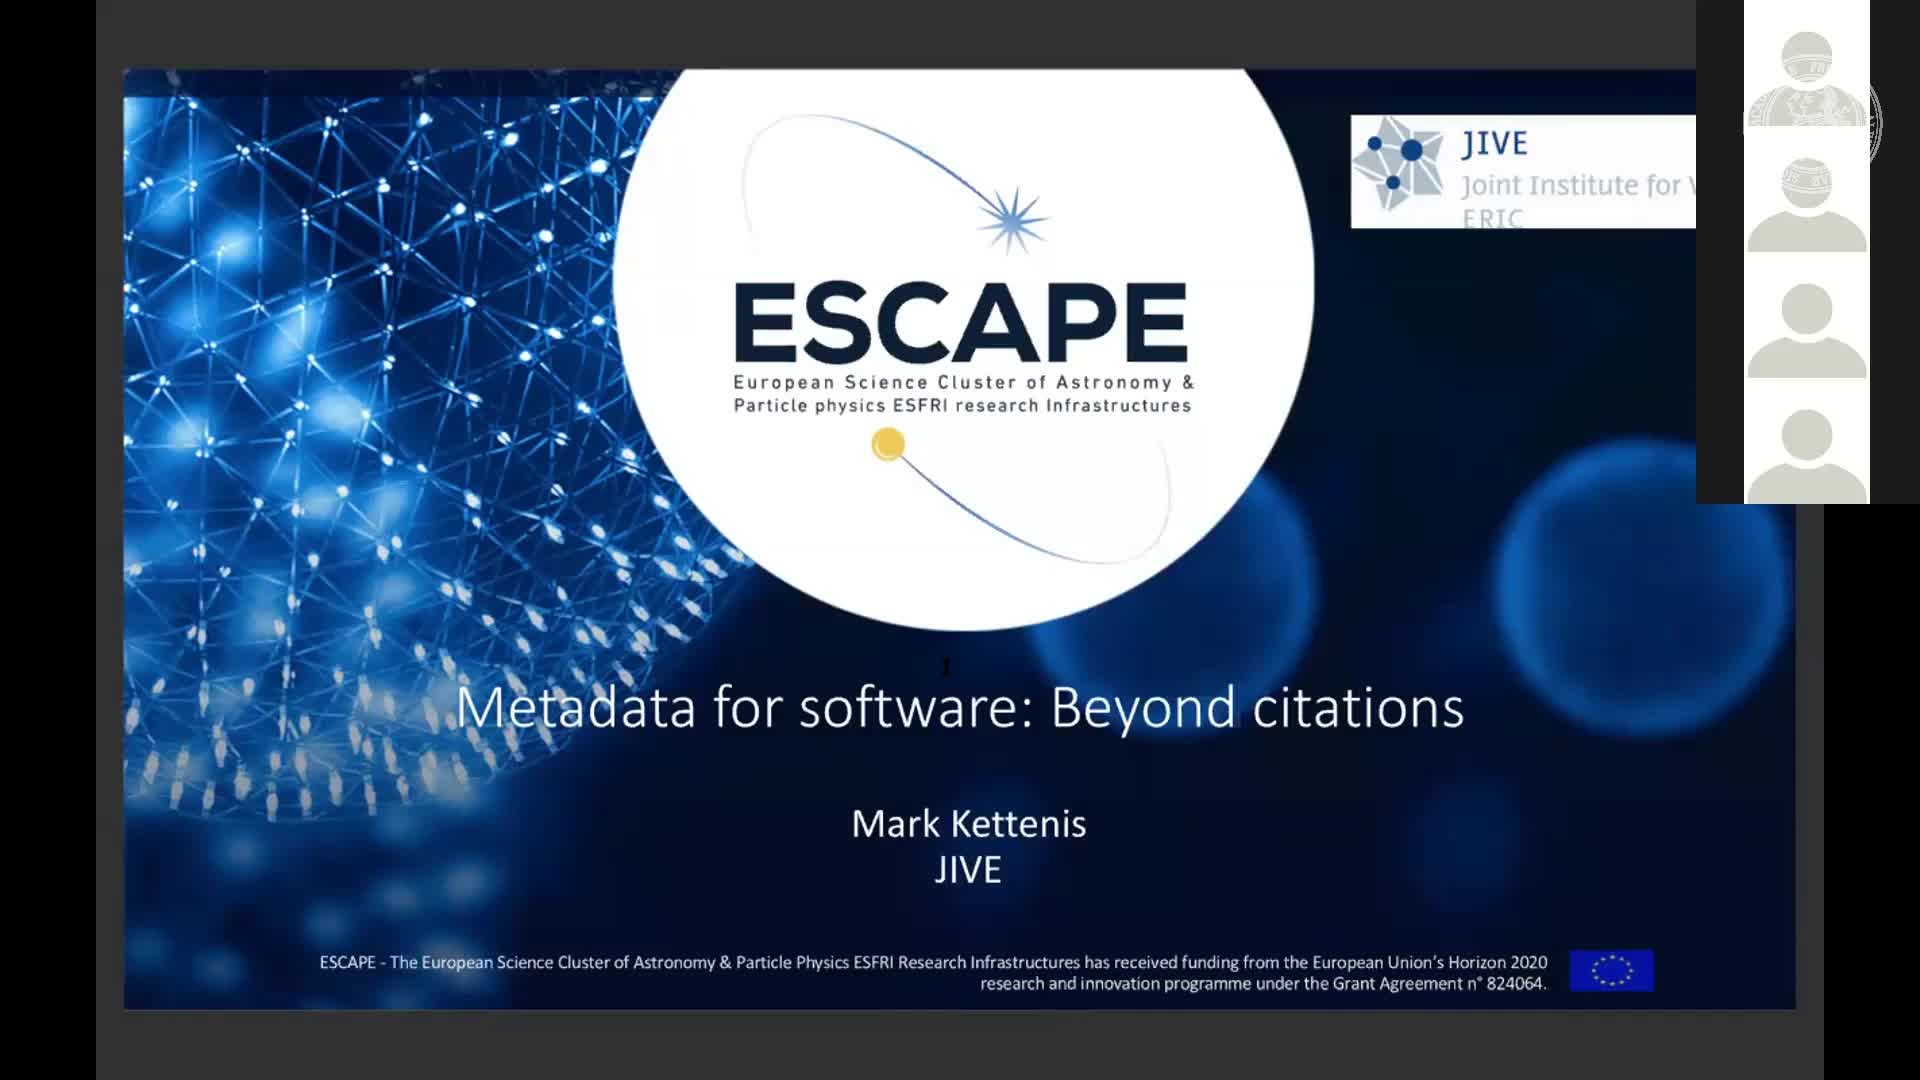 Software metadata beyond citations preview image